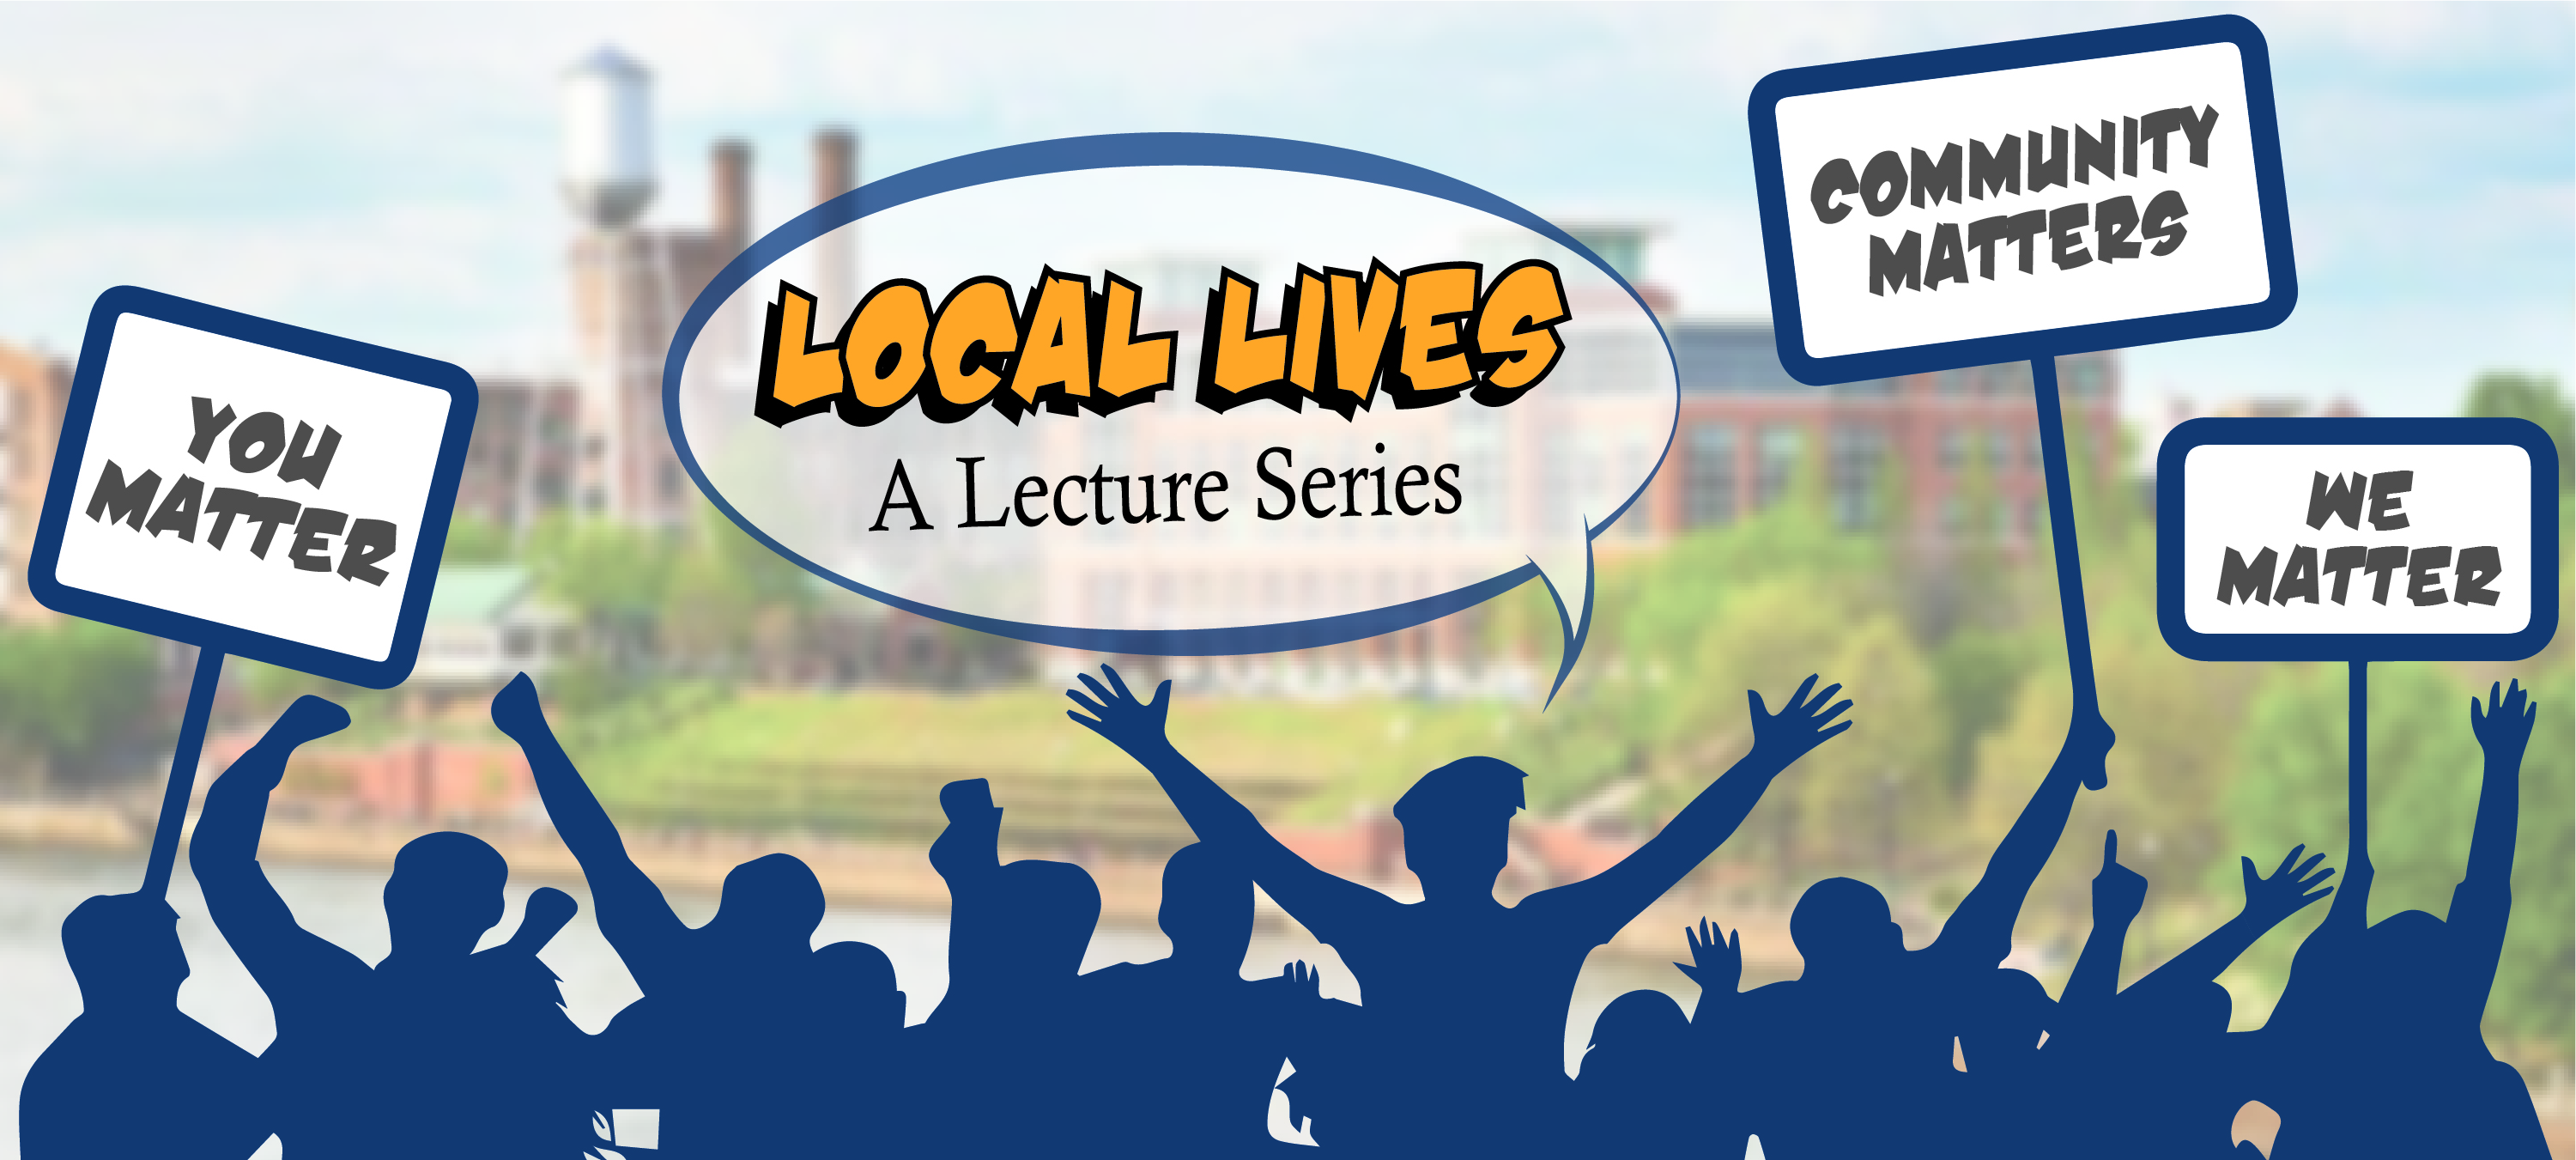 Local Lives: A Lecture Series